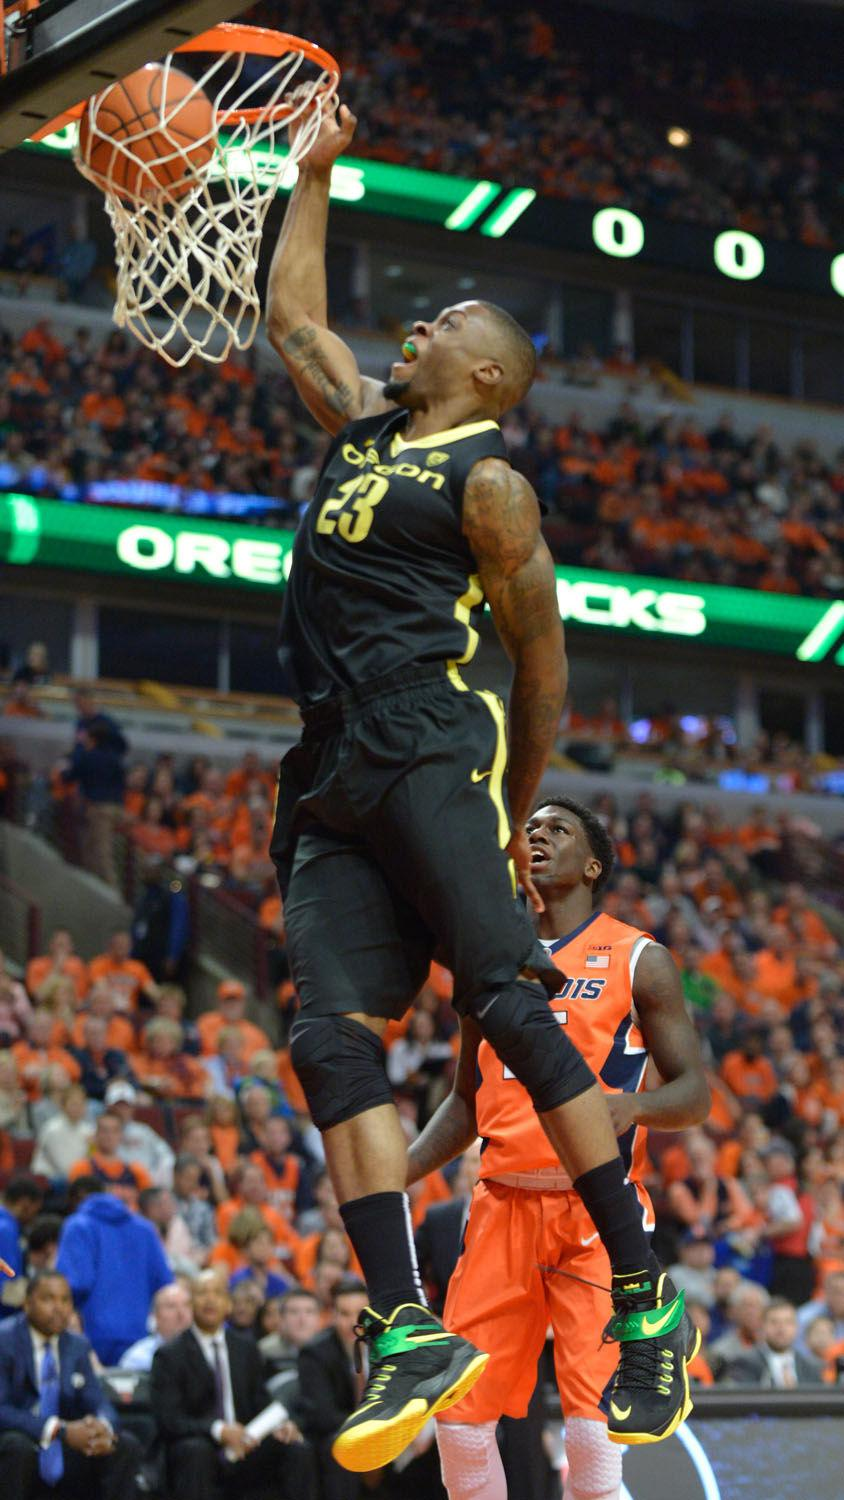 Oregon%27s+Elgin+Cook+dunks+the+ball+against+Illinois+at+United+Center+in+Chicago+on+Saturday.+The+loss+to+Oregon+leaves+Illinois+with+no+chance+for+a+marquee+win+in+nonconference+play.